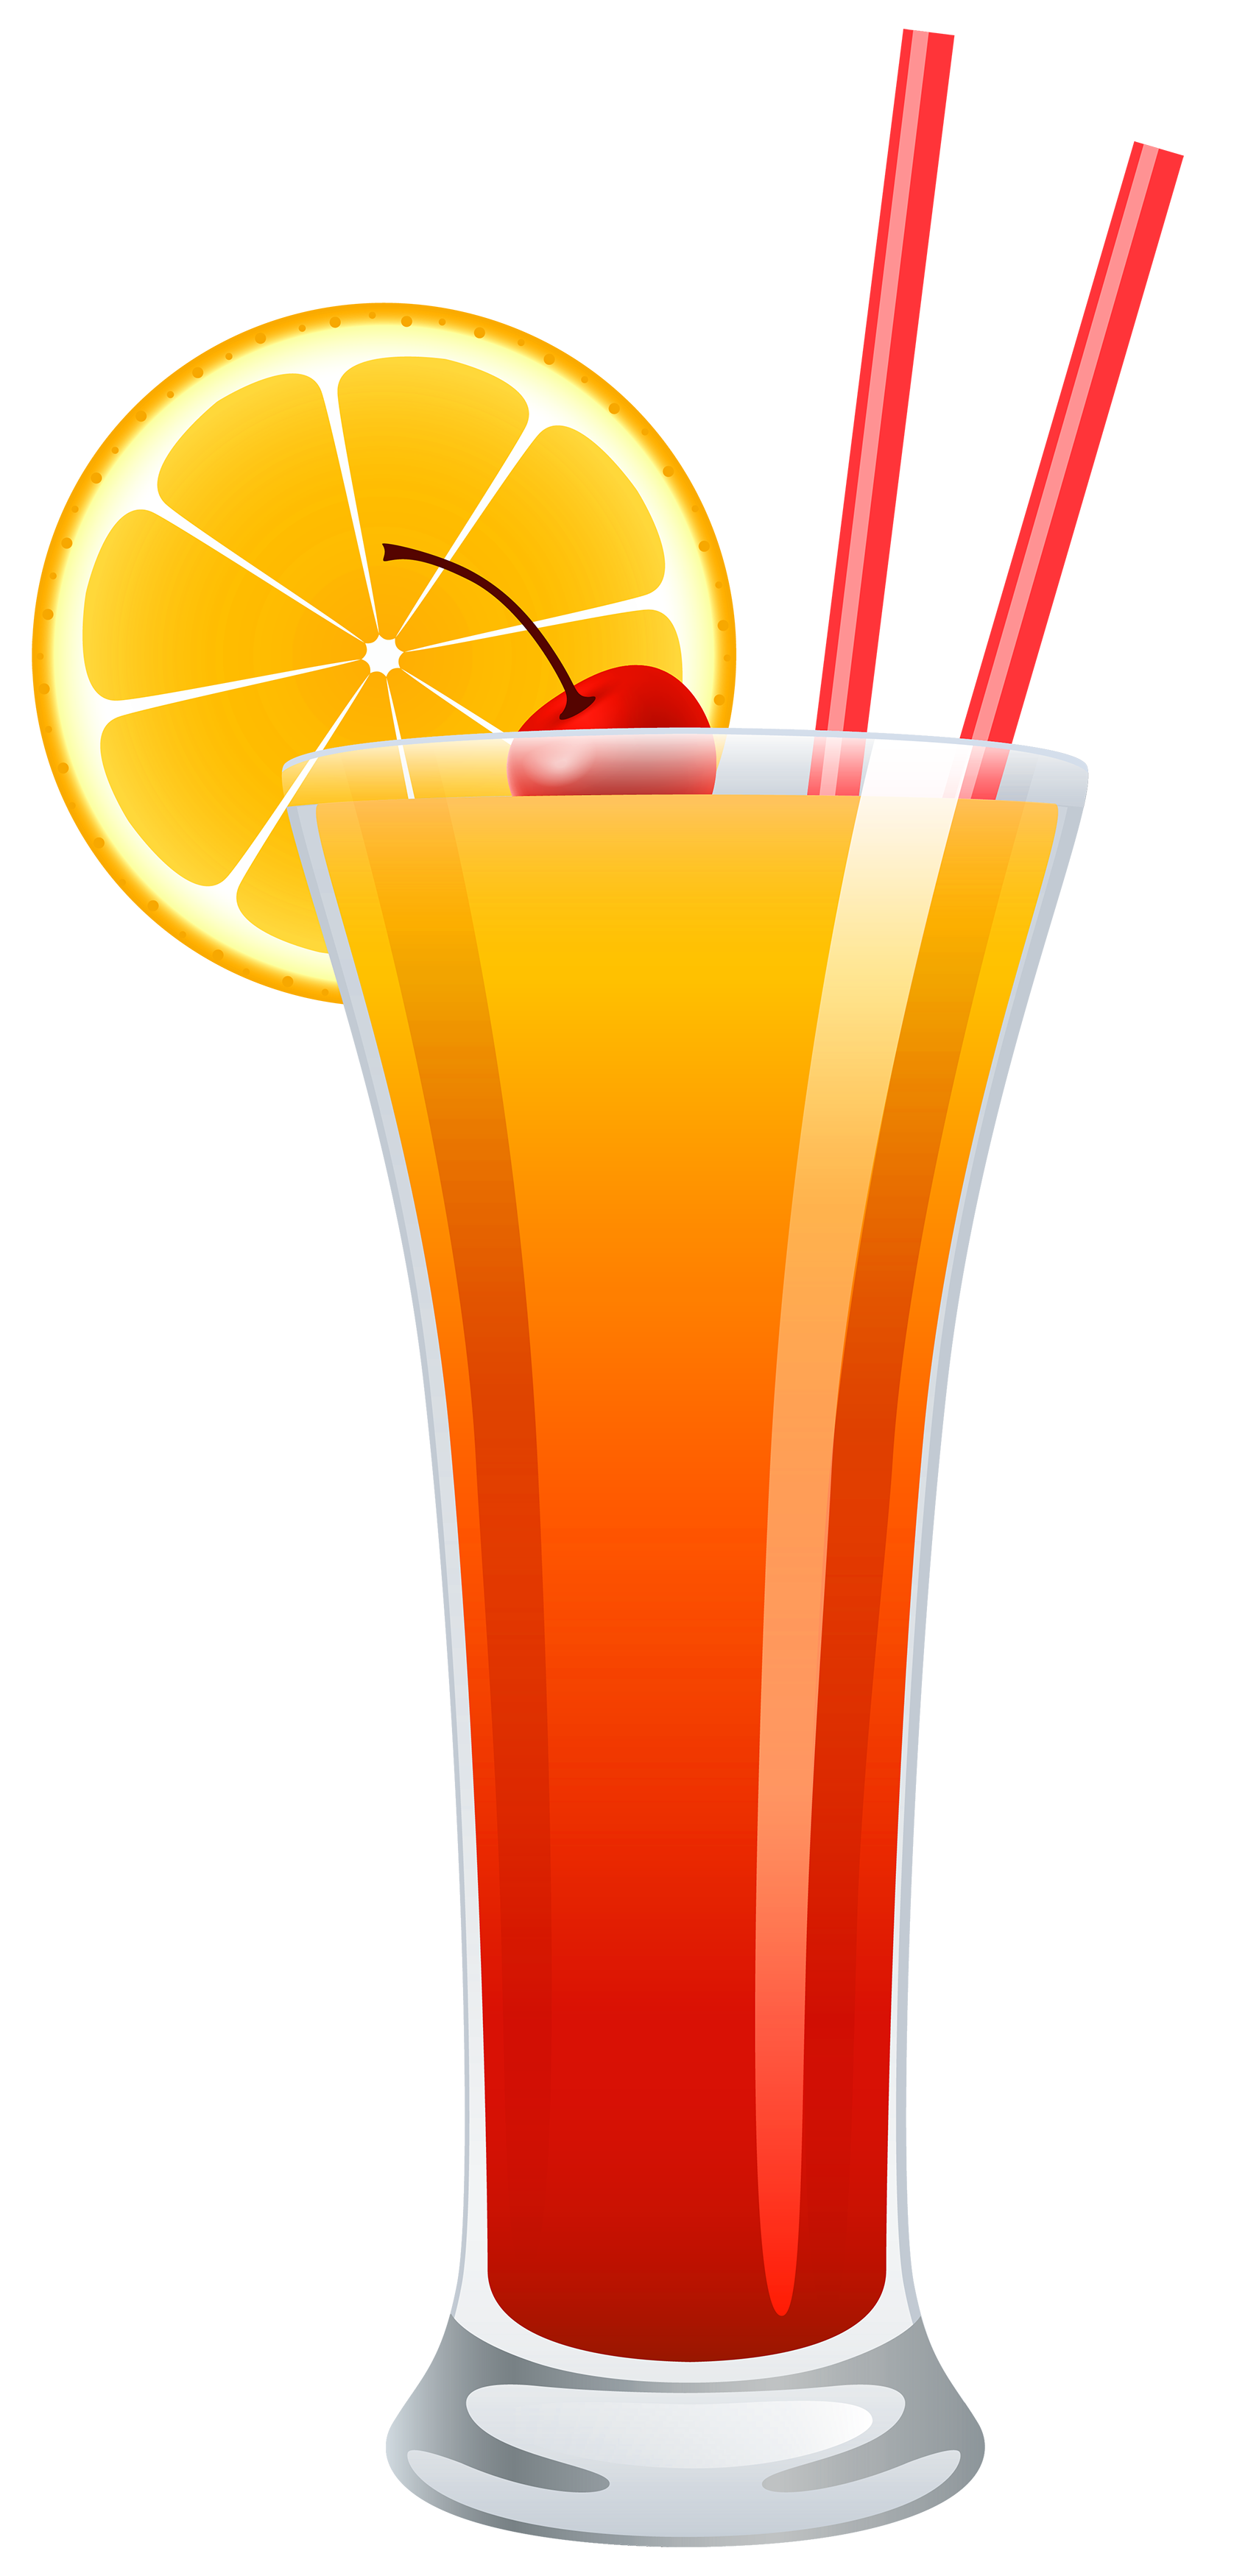 Drink clipart punch drink. Cocktail tequila sunrise png